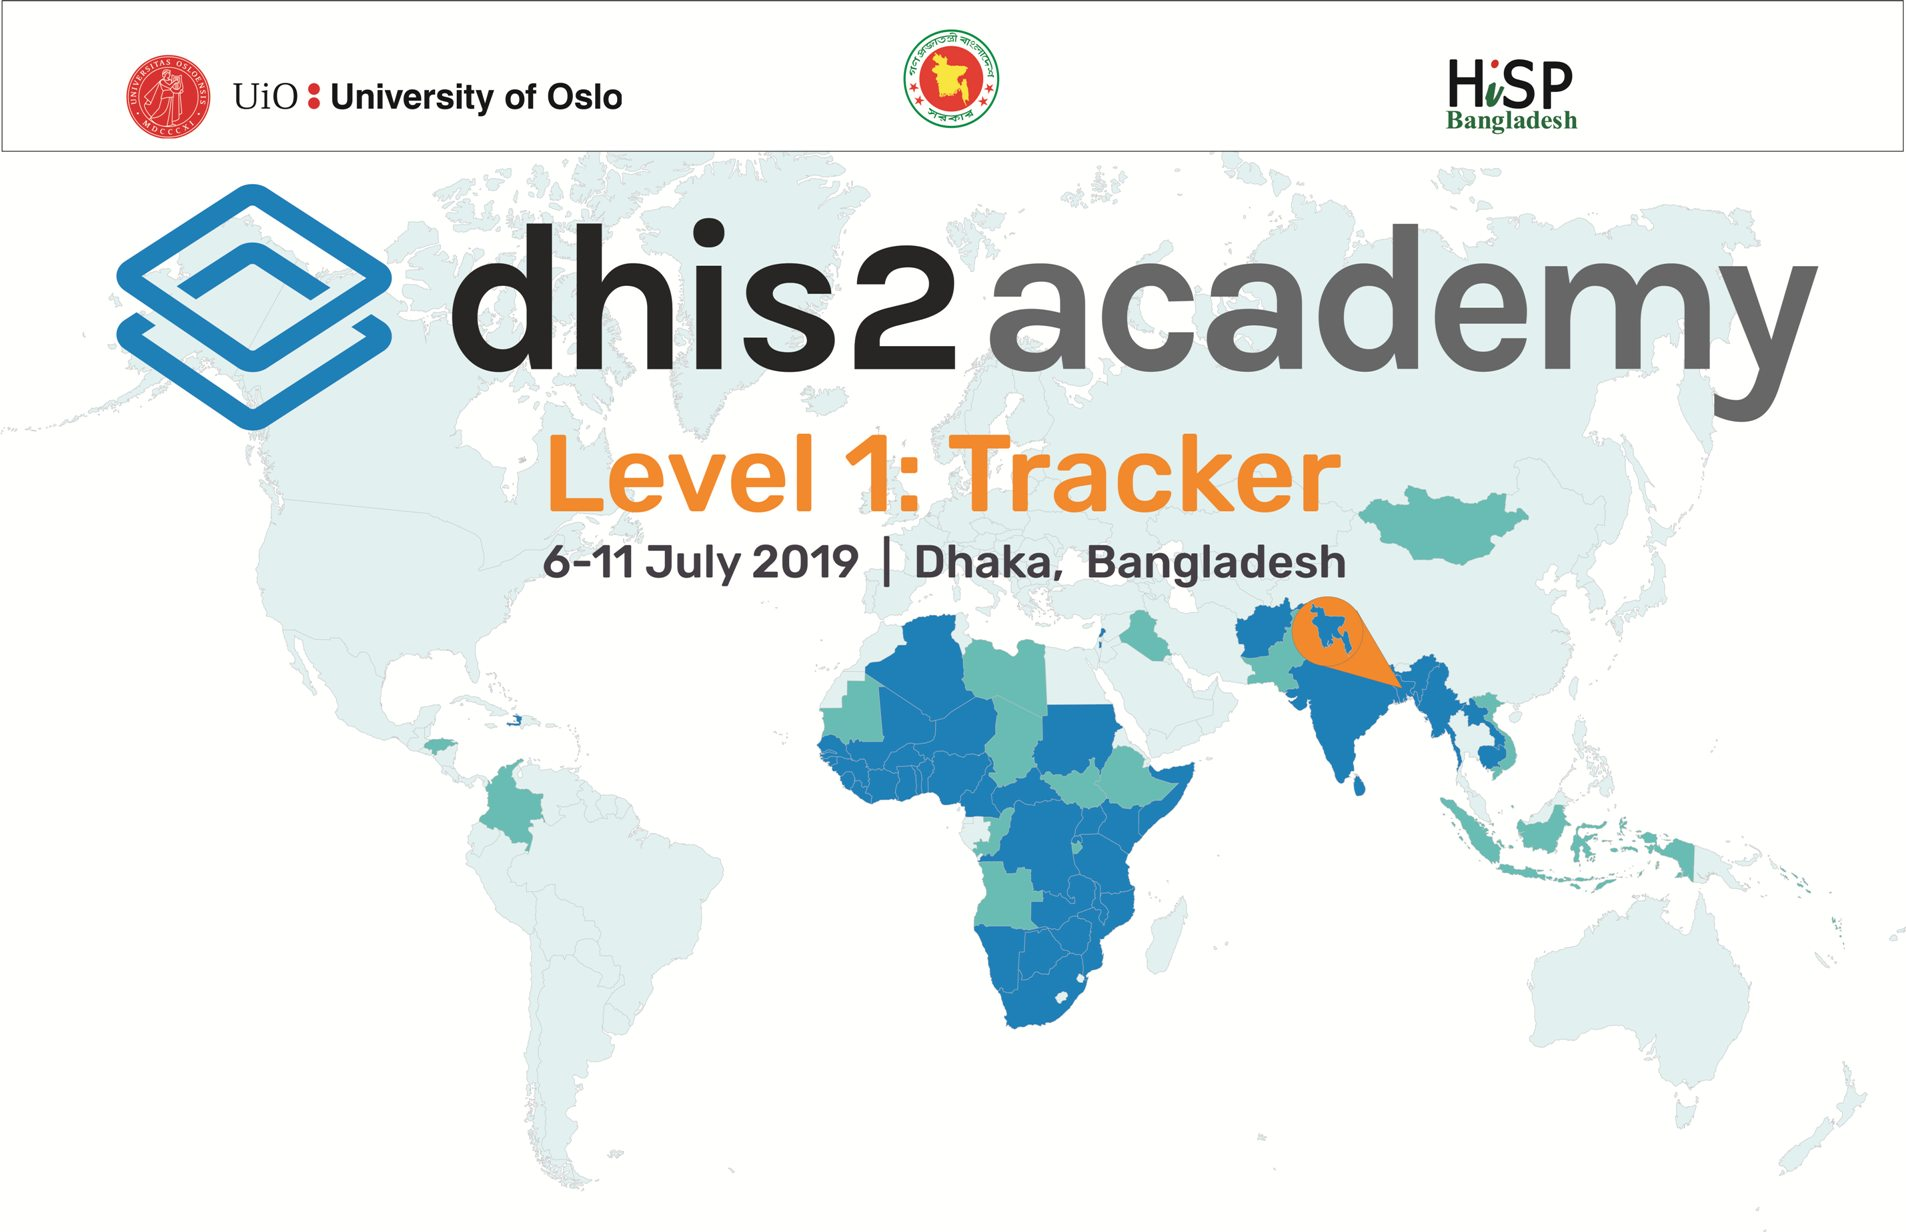 DHIS2 Level 1 Tracker 2019